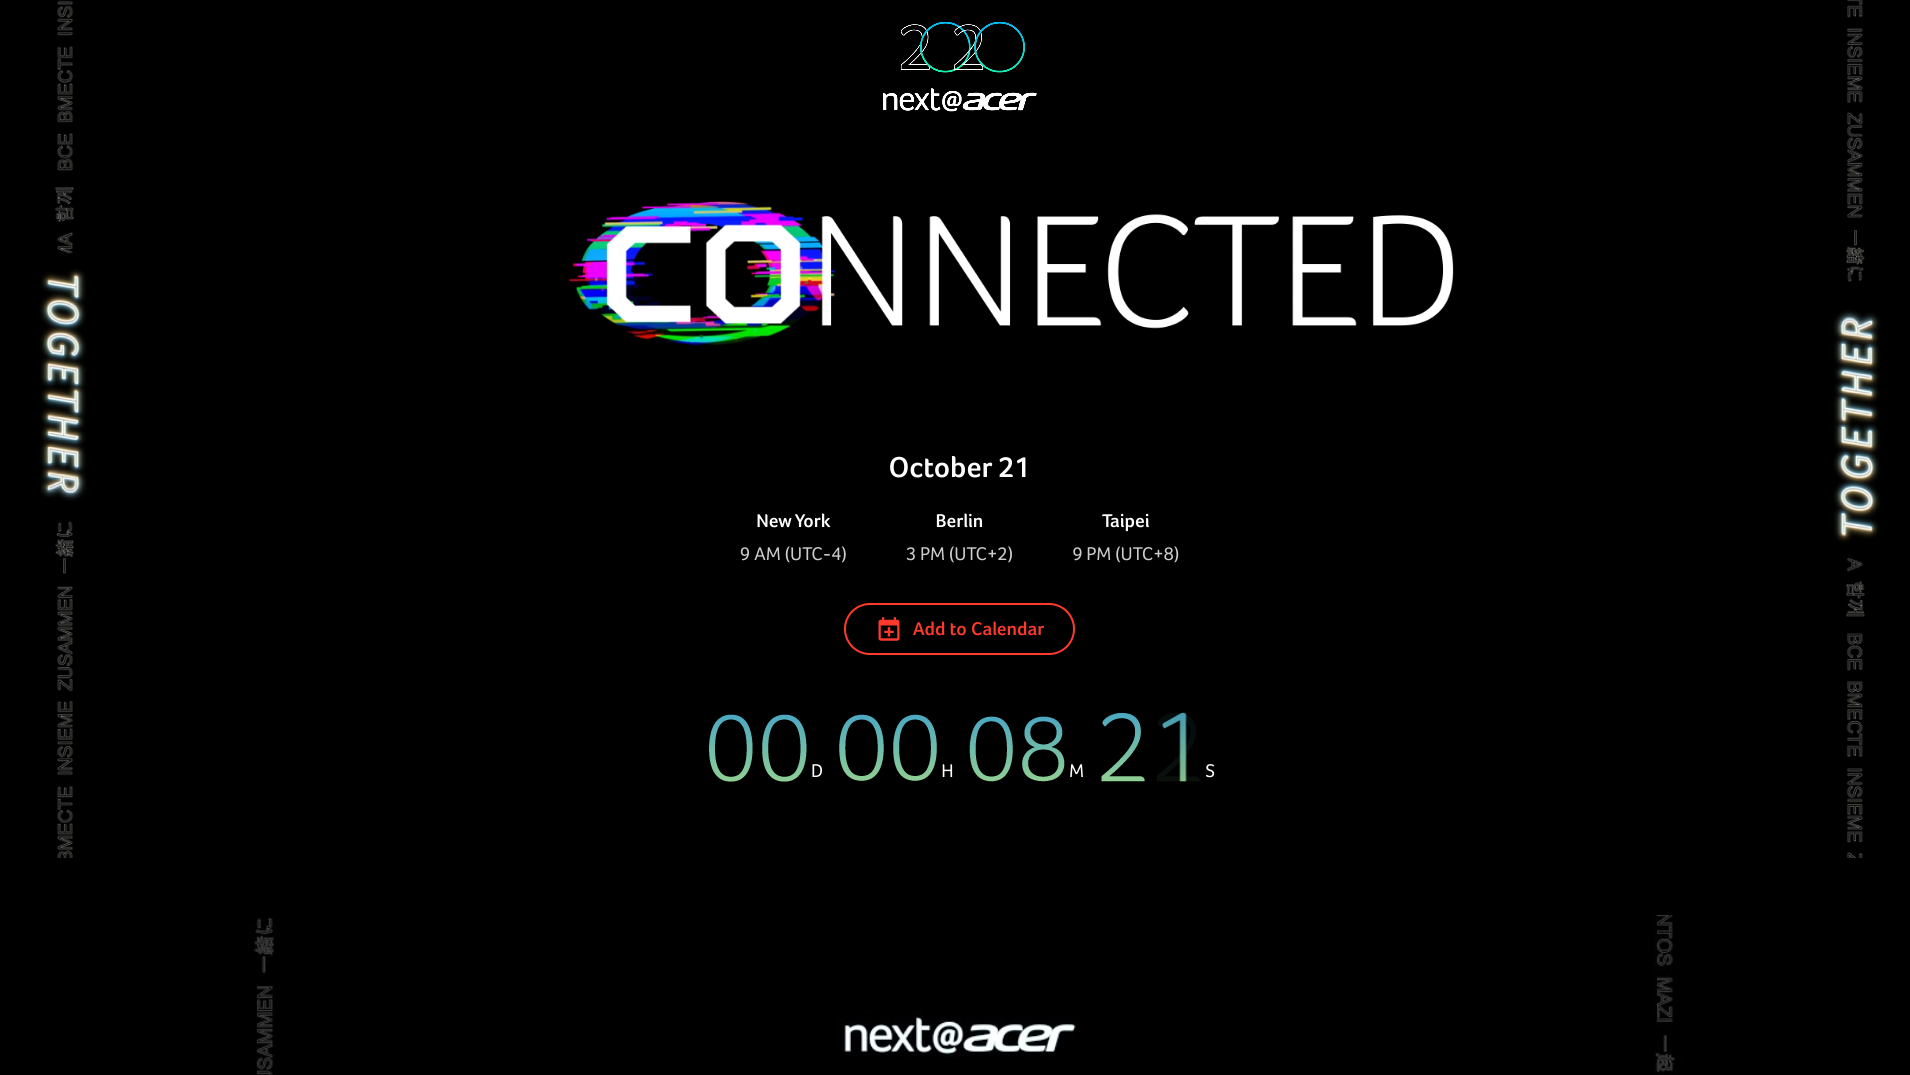 Watch Acer's October Press Conference right here at 9AM EST